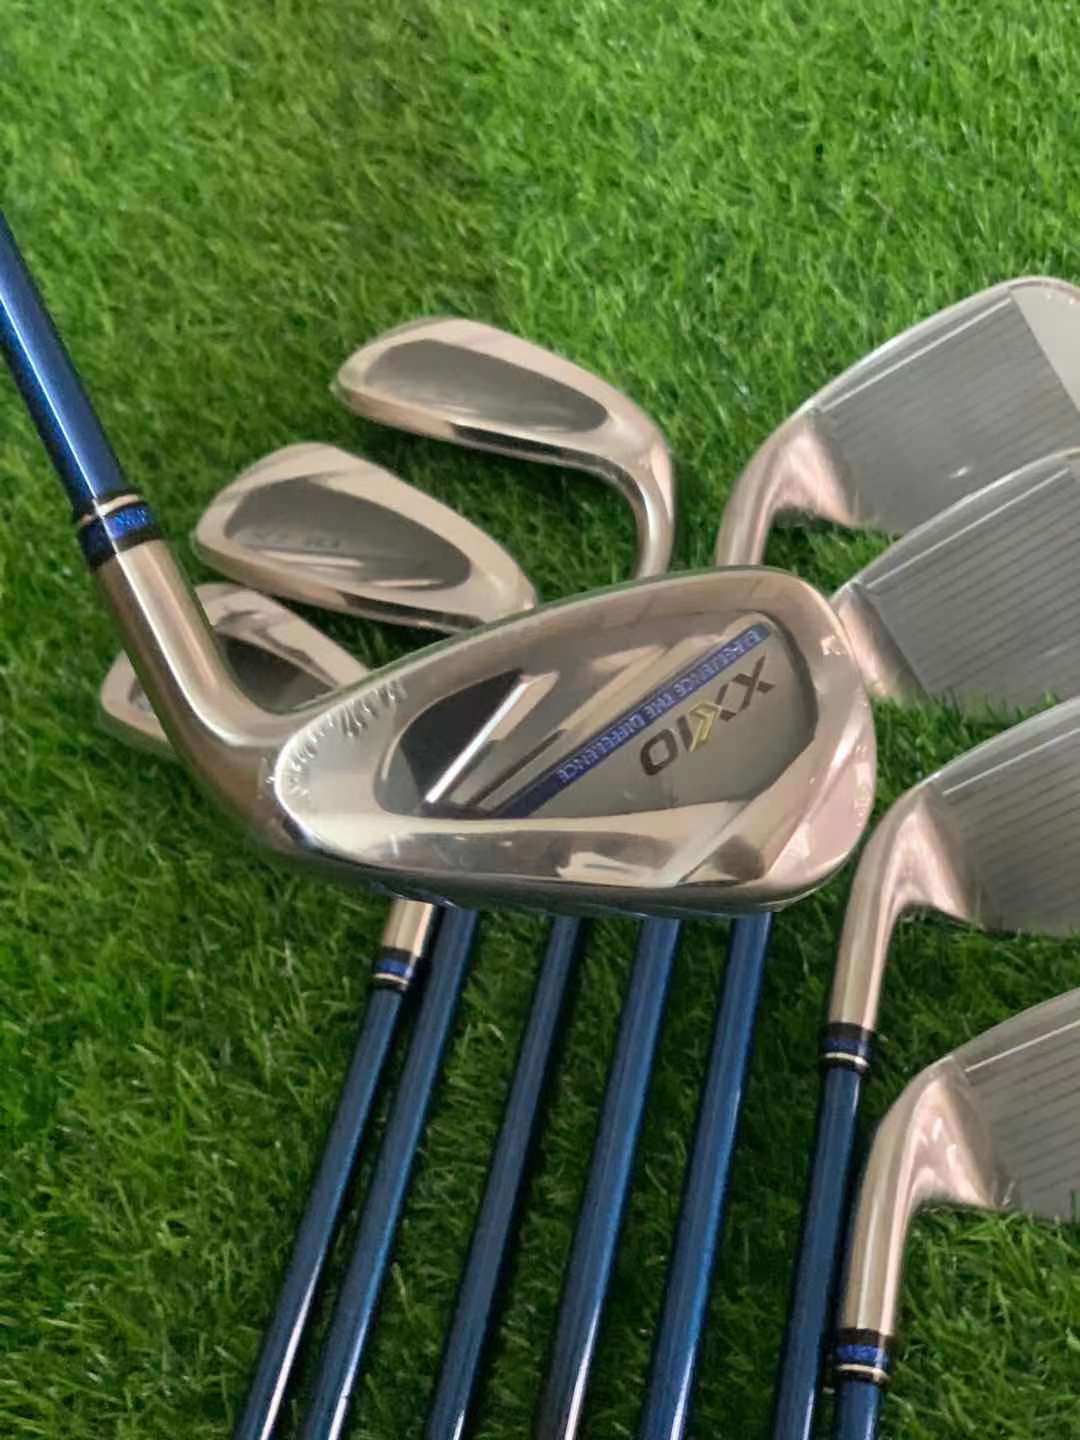 New XX10 men's golf clubs MP1100 irons MP 1100 golf irons set with protective cover Graphite/steel shaft golf clubs 8 packs